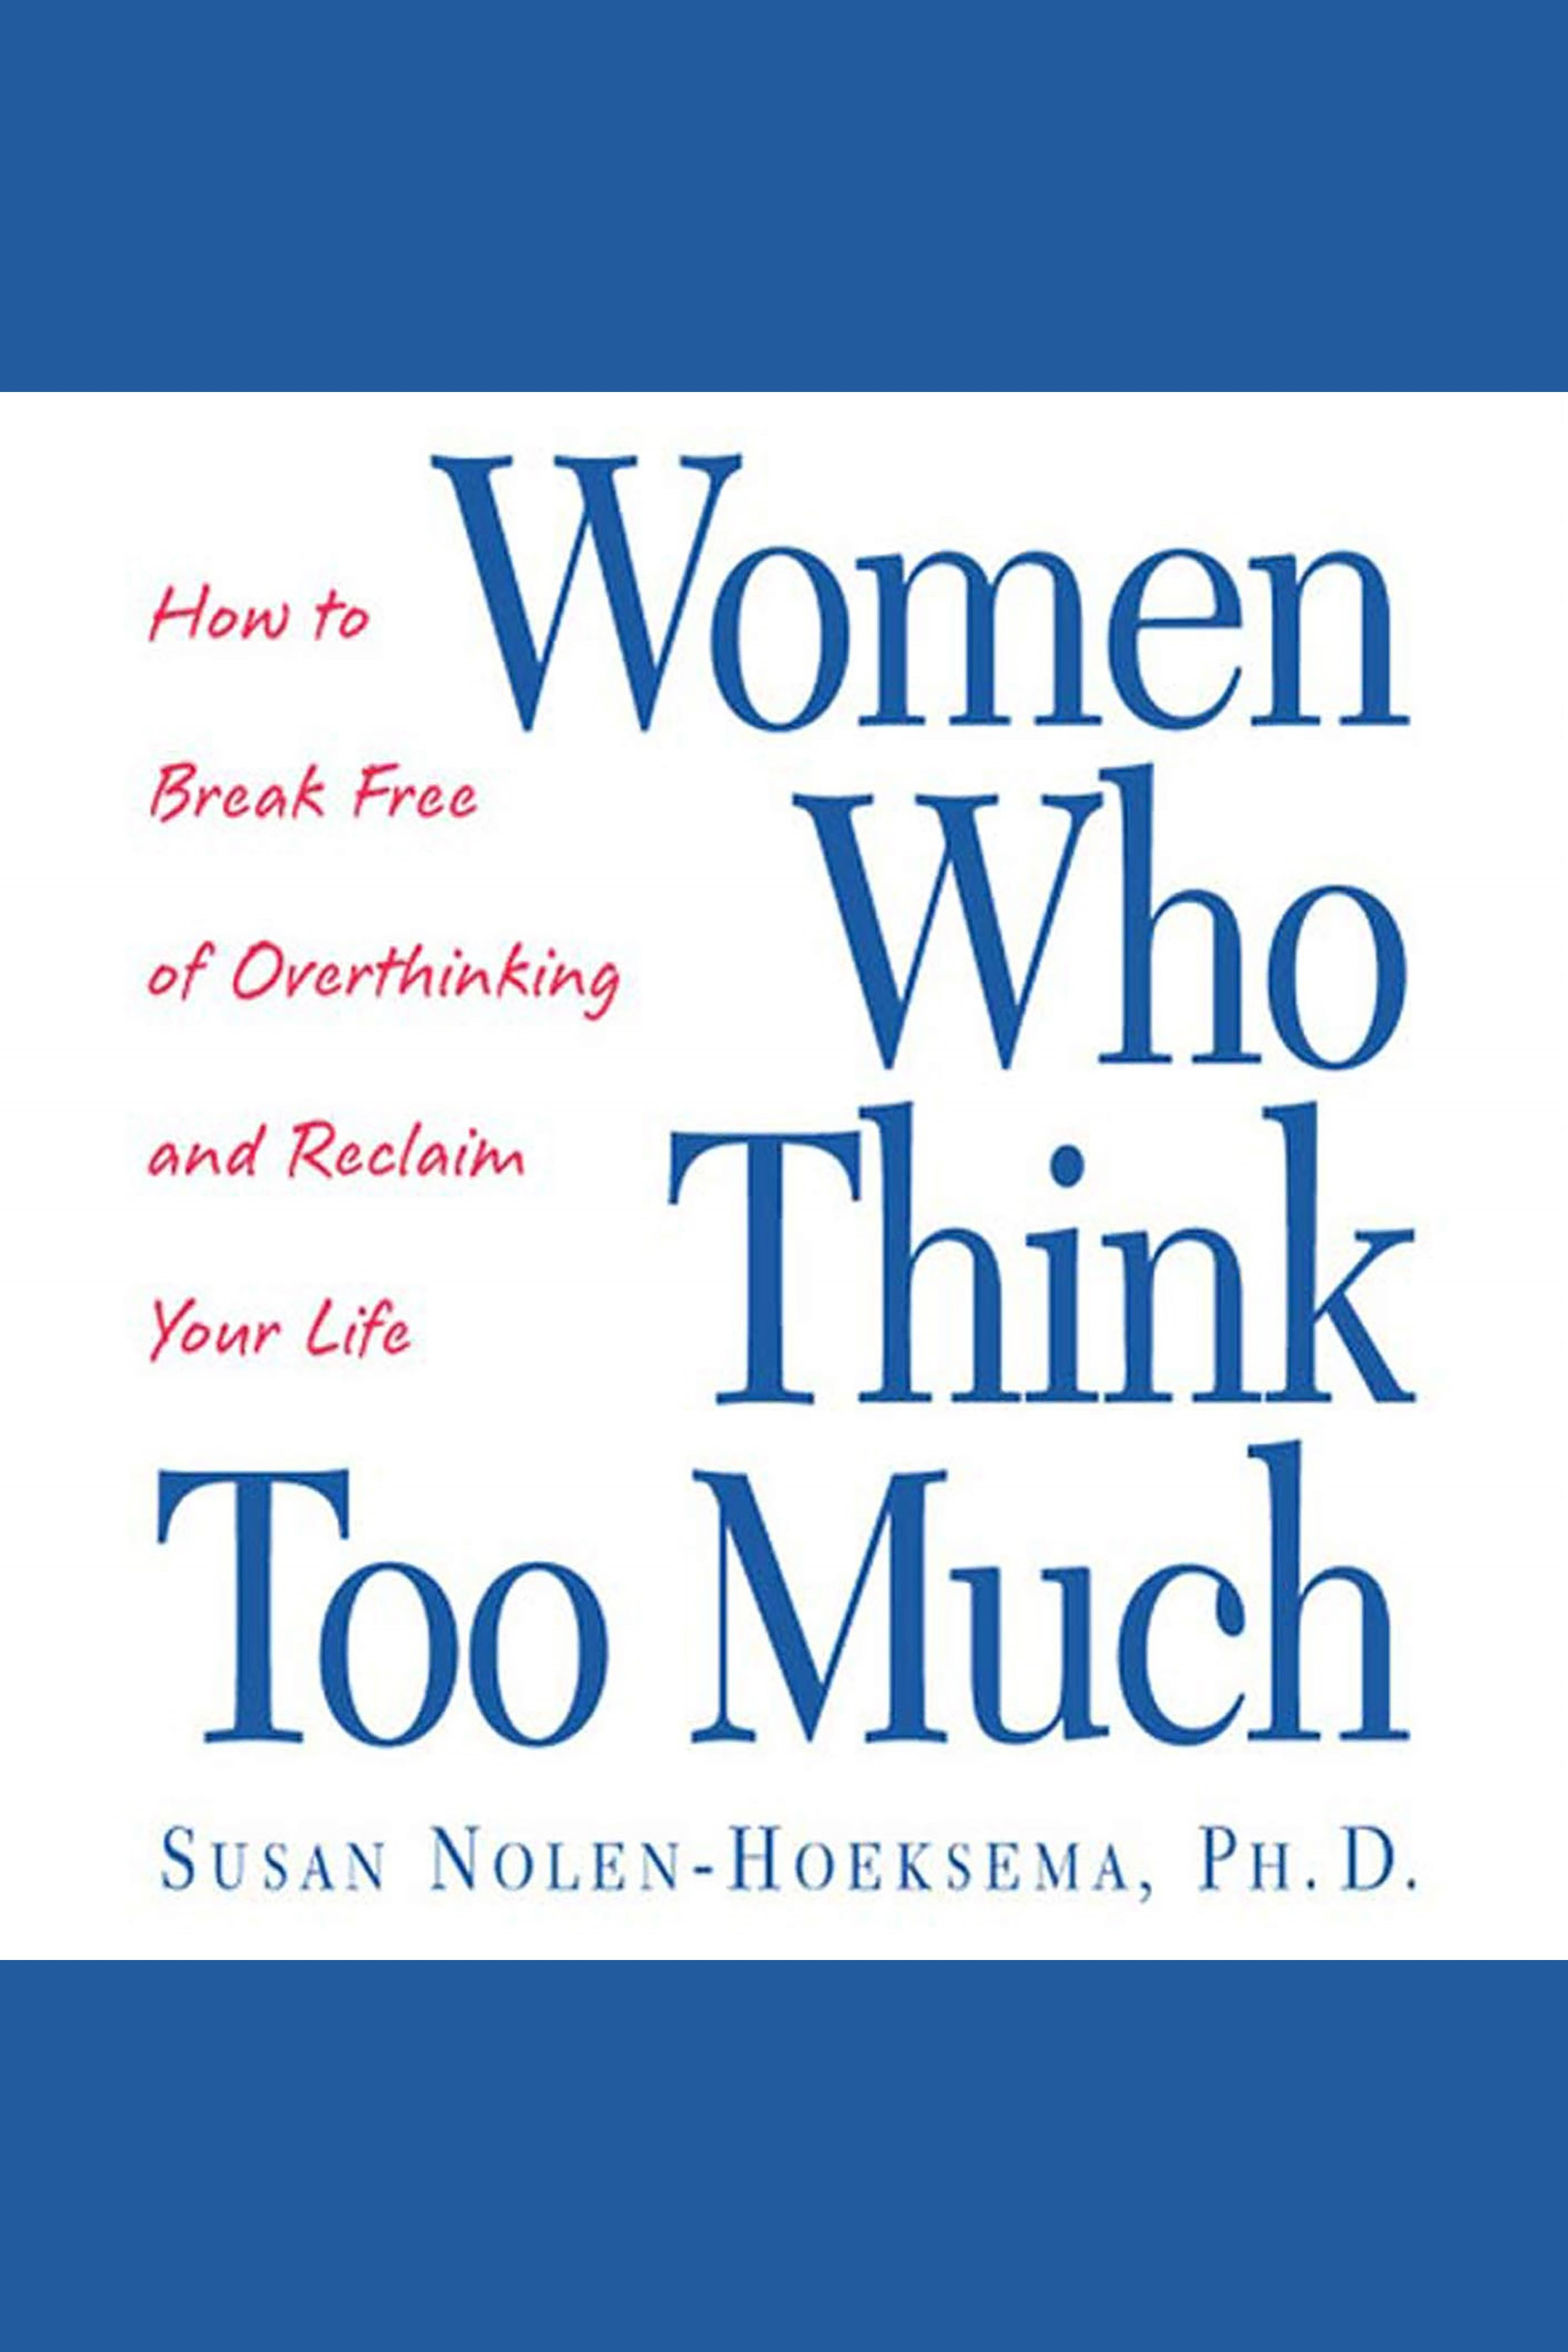 Women Who Think Too Much How to Break Free of Overthinking and Reclaim Your Life cover image